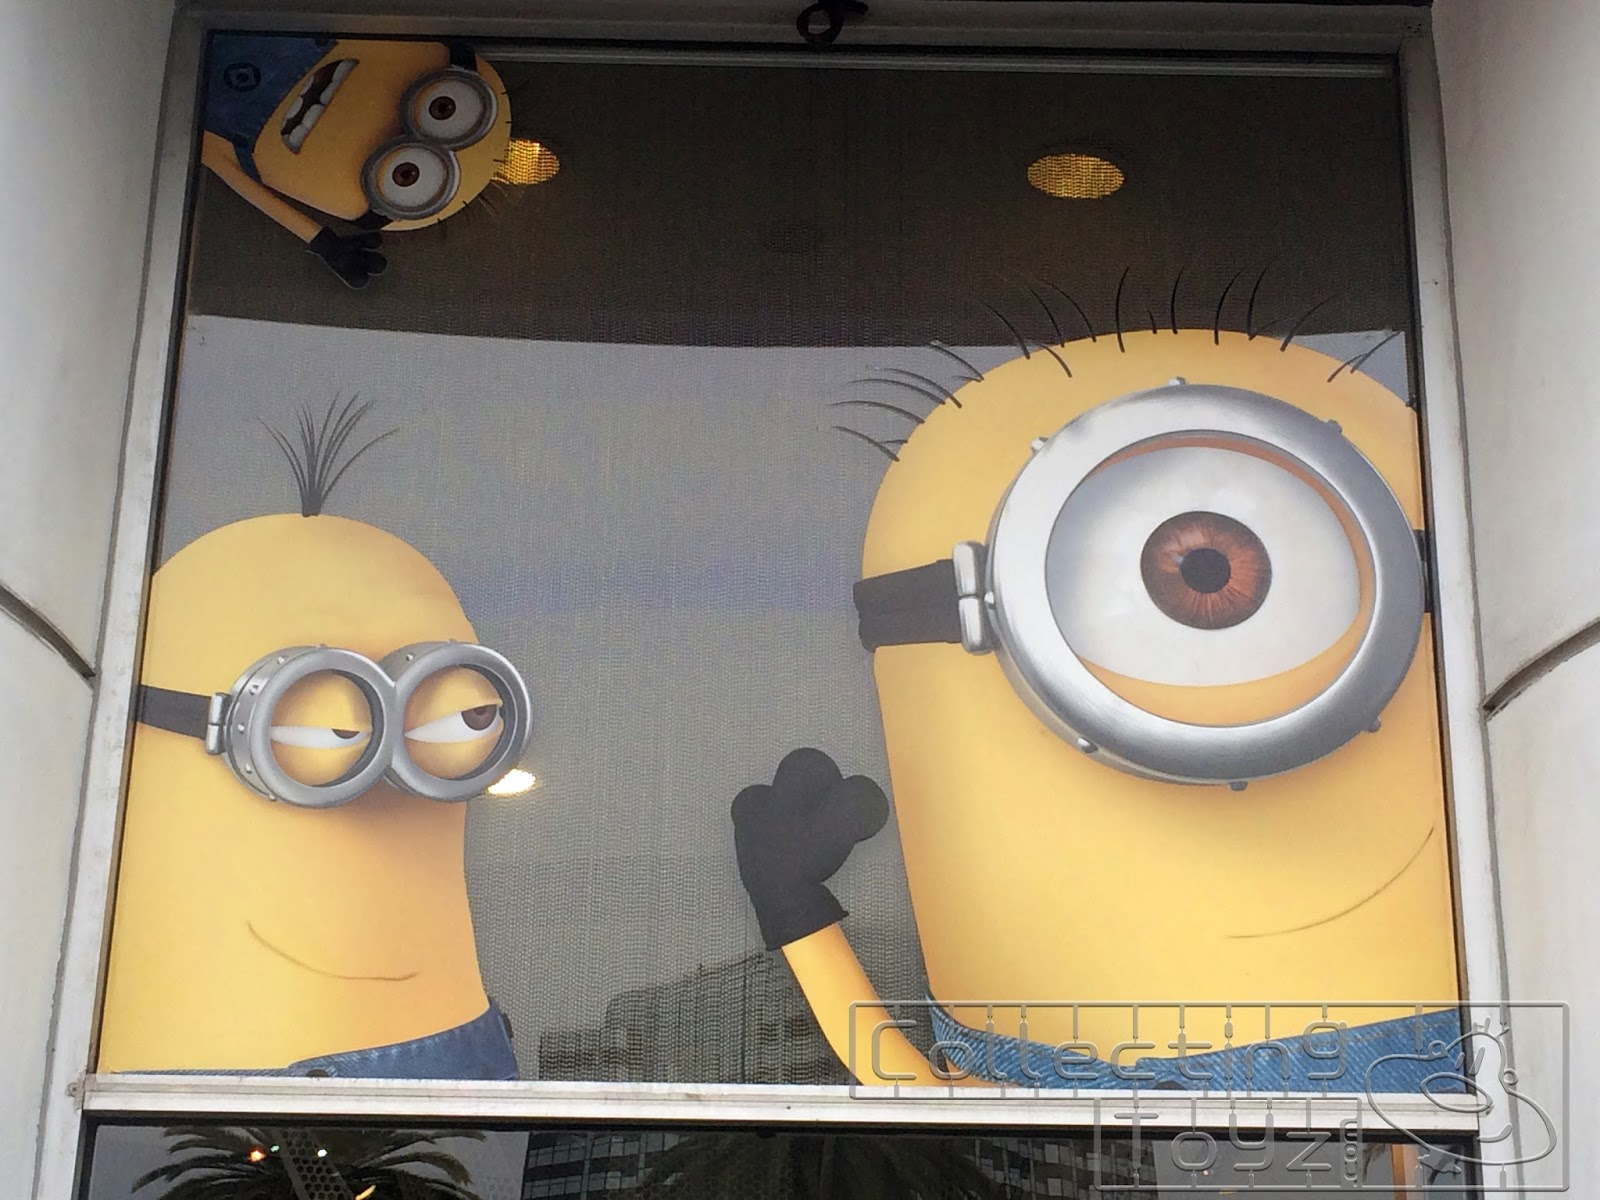 The Despicable Me Minion Mayhem Ride Super Silly Fun Land Just Had Their Grand Opening Week Before Wondercon And